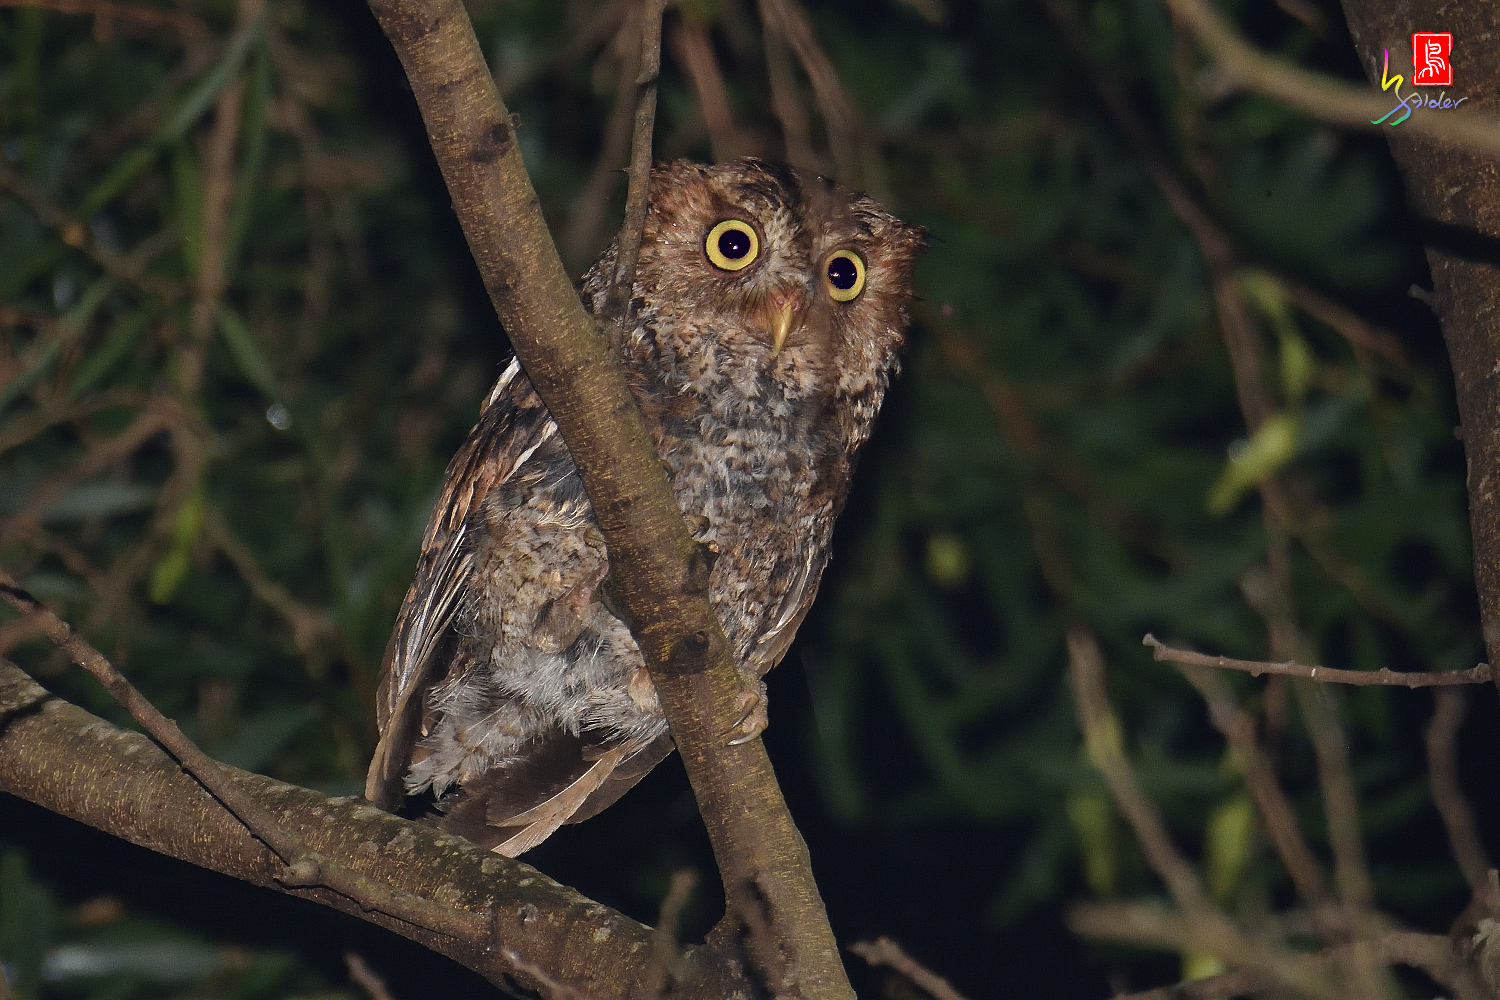 Moutain_Scops_Owl_1531